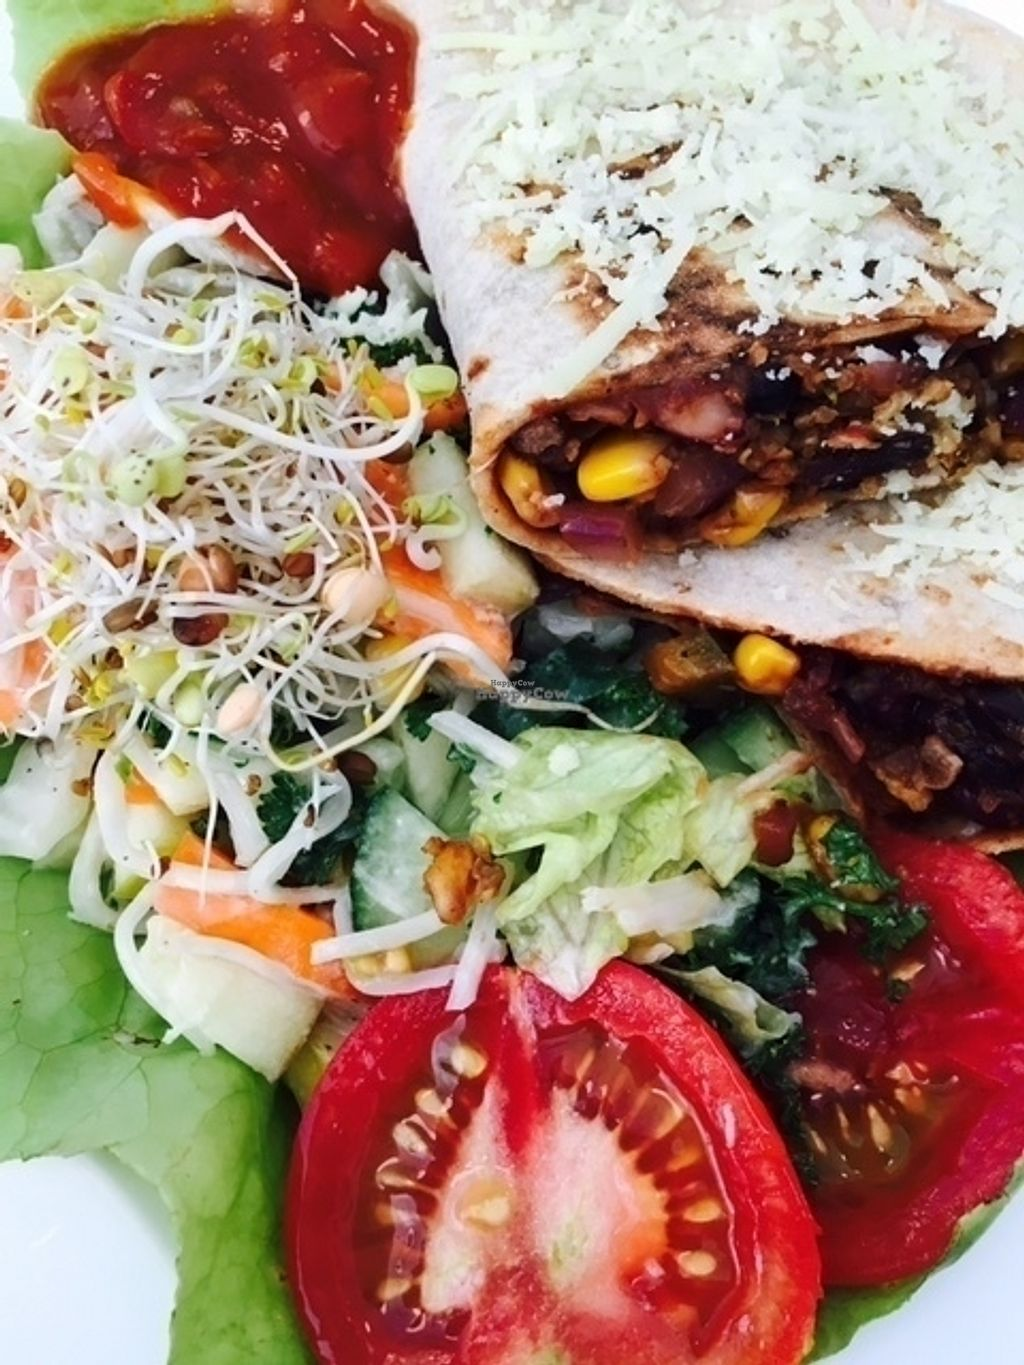 """Photo of CLOSED: Veganity Foods  by <a href=""""/members/profile/VeganityFoods"""">VeganityFoods</a> <br/>Quescadillas with Veganity Meatless Mince <br/> October 13, 2016  - <a href='/contact/abuse/image/61705/181871'>Report</a>"""